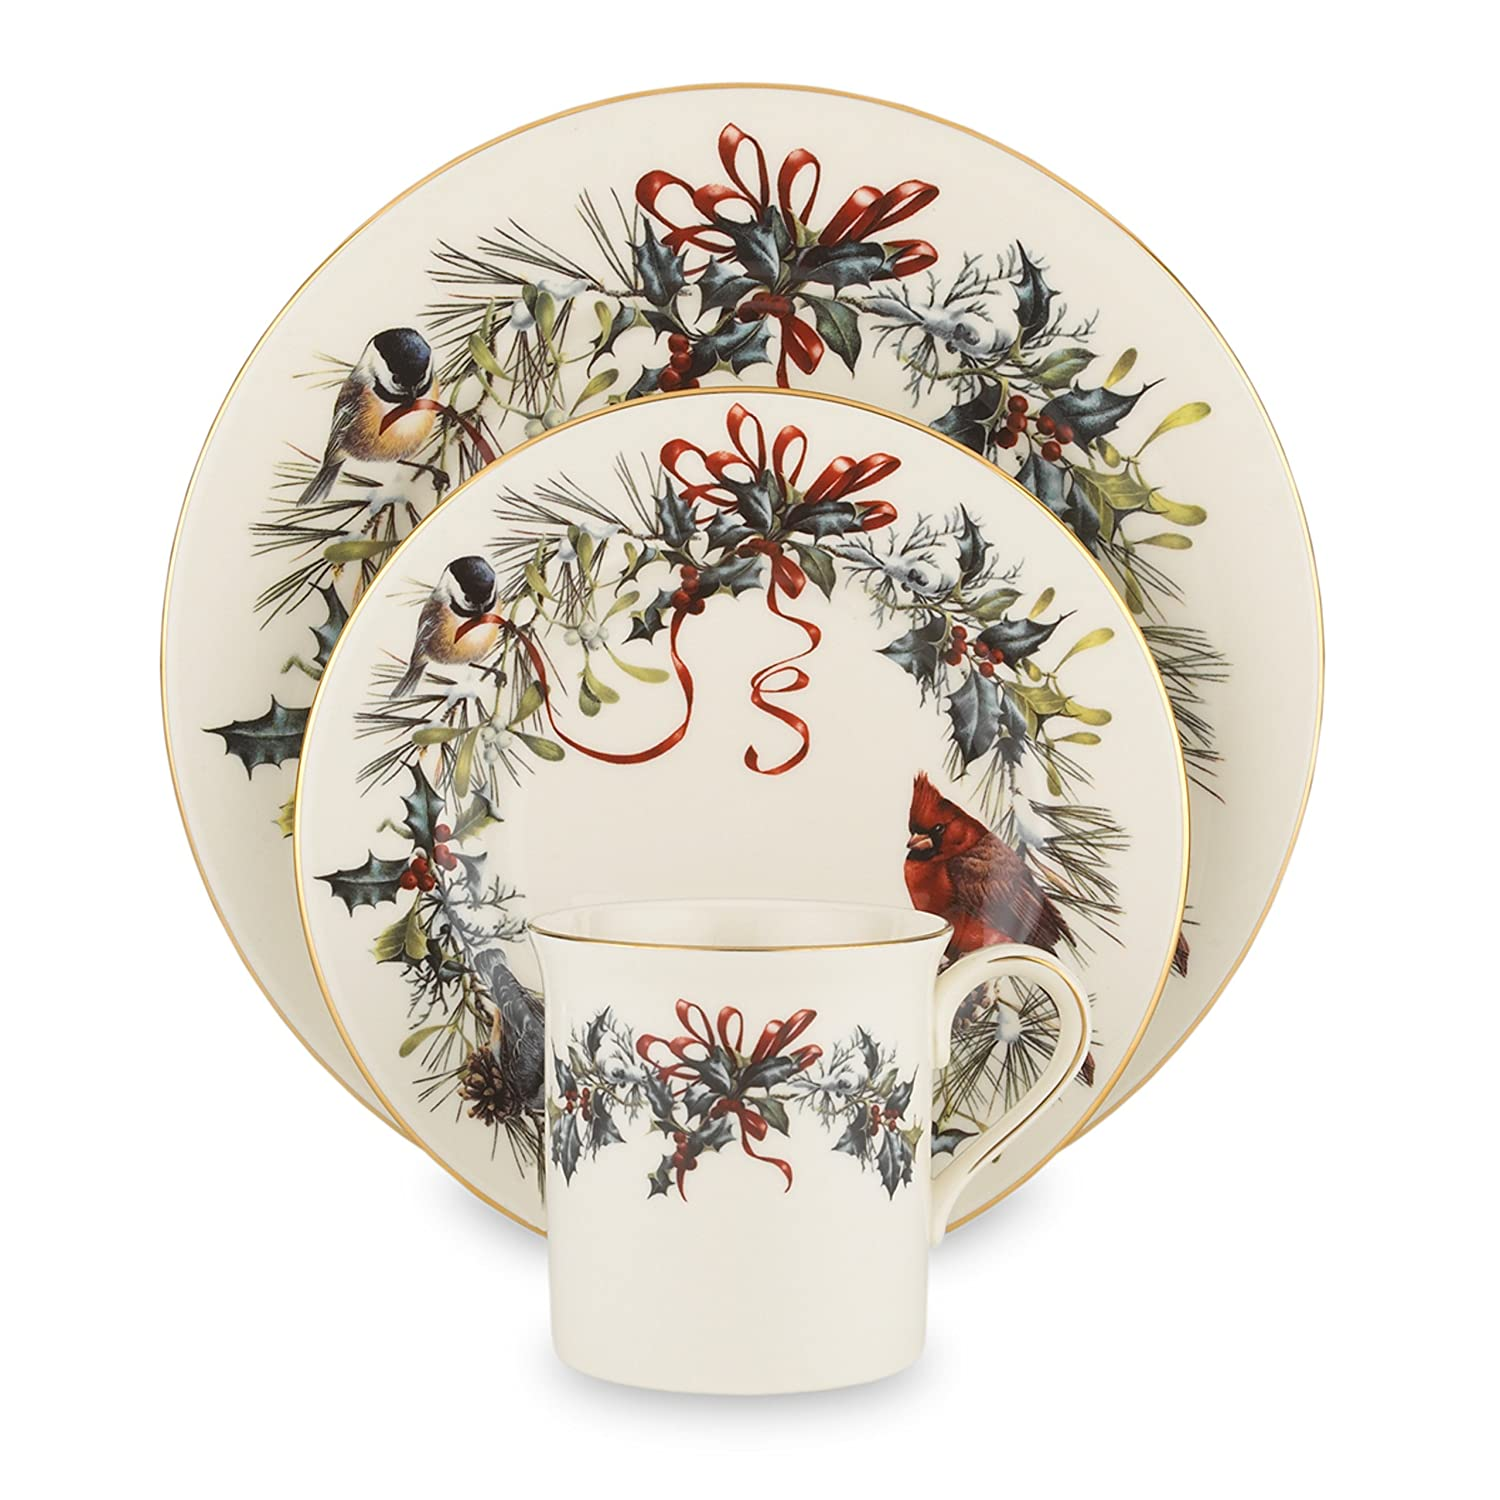 Amazon.com | Lenox Winter Greetings 12 Piece Set Christmas Dishes Accent Plates  sc 1 st  Amazon.com & Amazon.com | Lenox Winter Greetings 12 Piece Set: Christmas Dishes ...